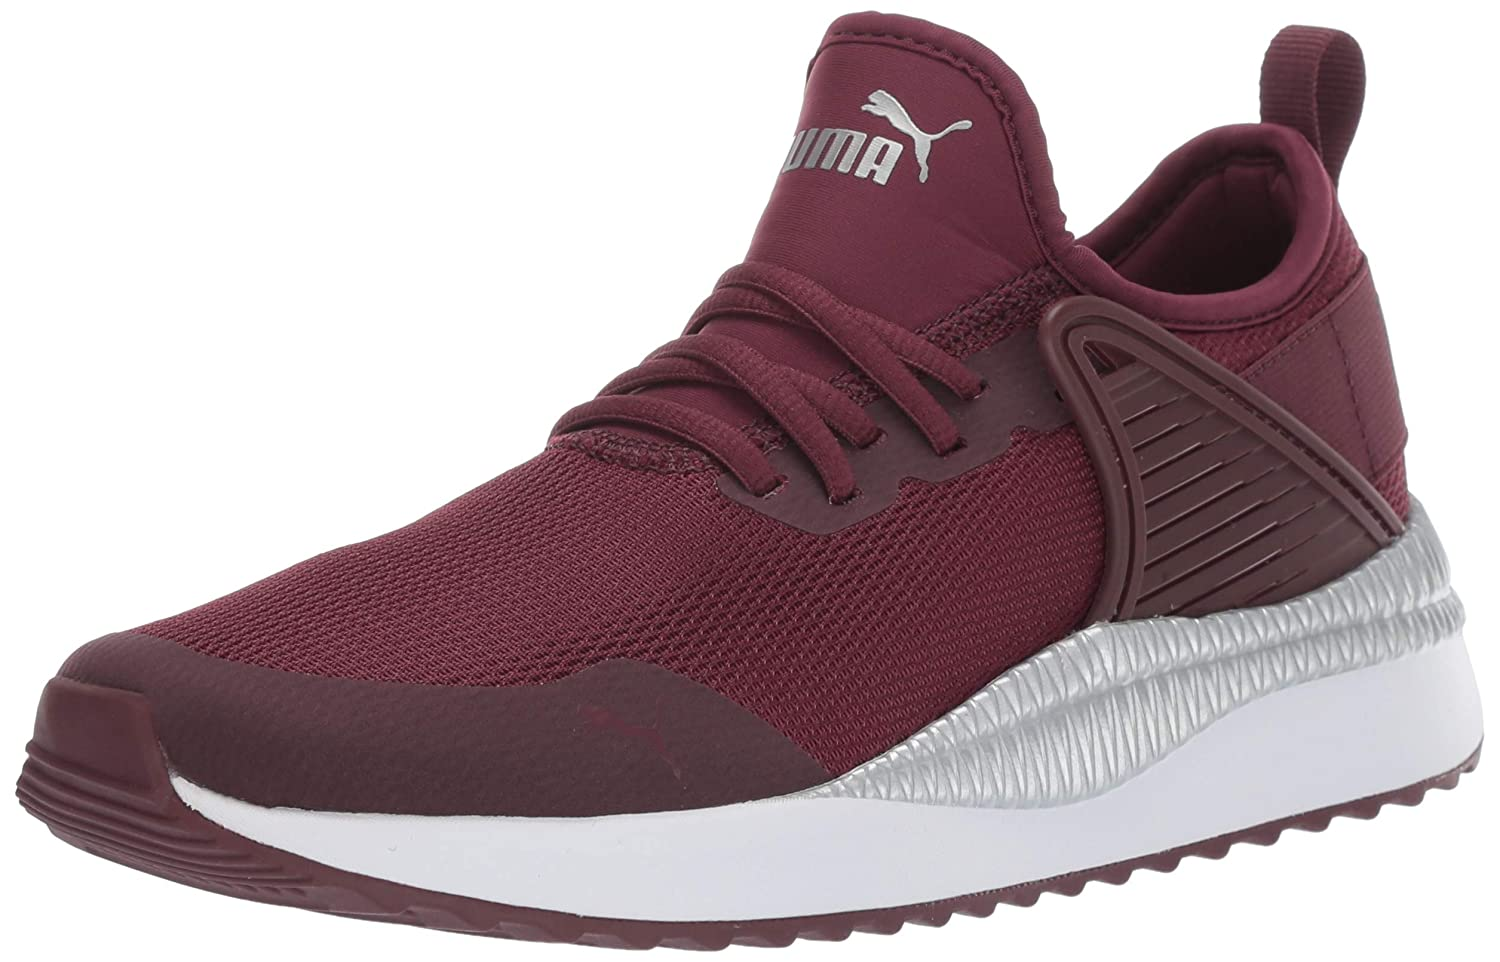 229704f7562 Puma Women s s Pacer Next Cage Sneaker  Amazon.co.uk  Shoes   Bags